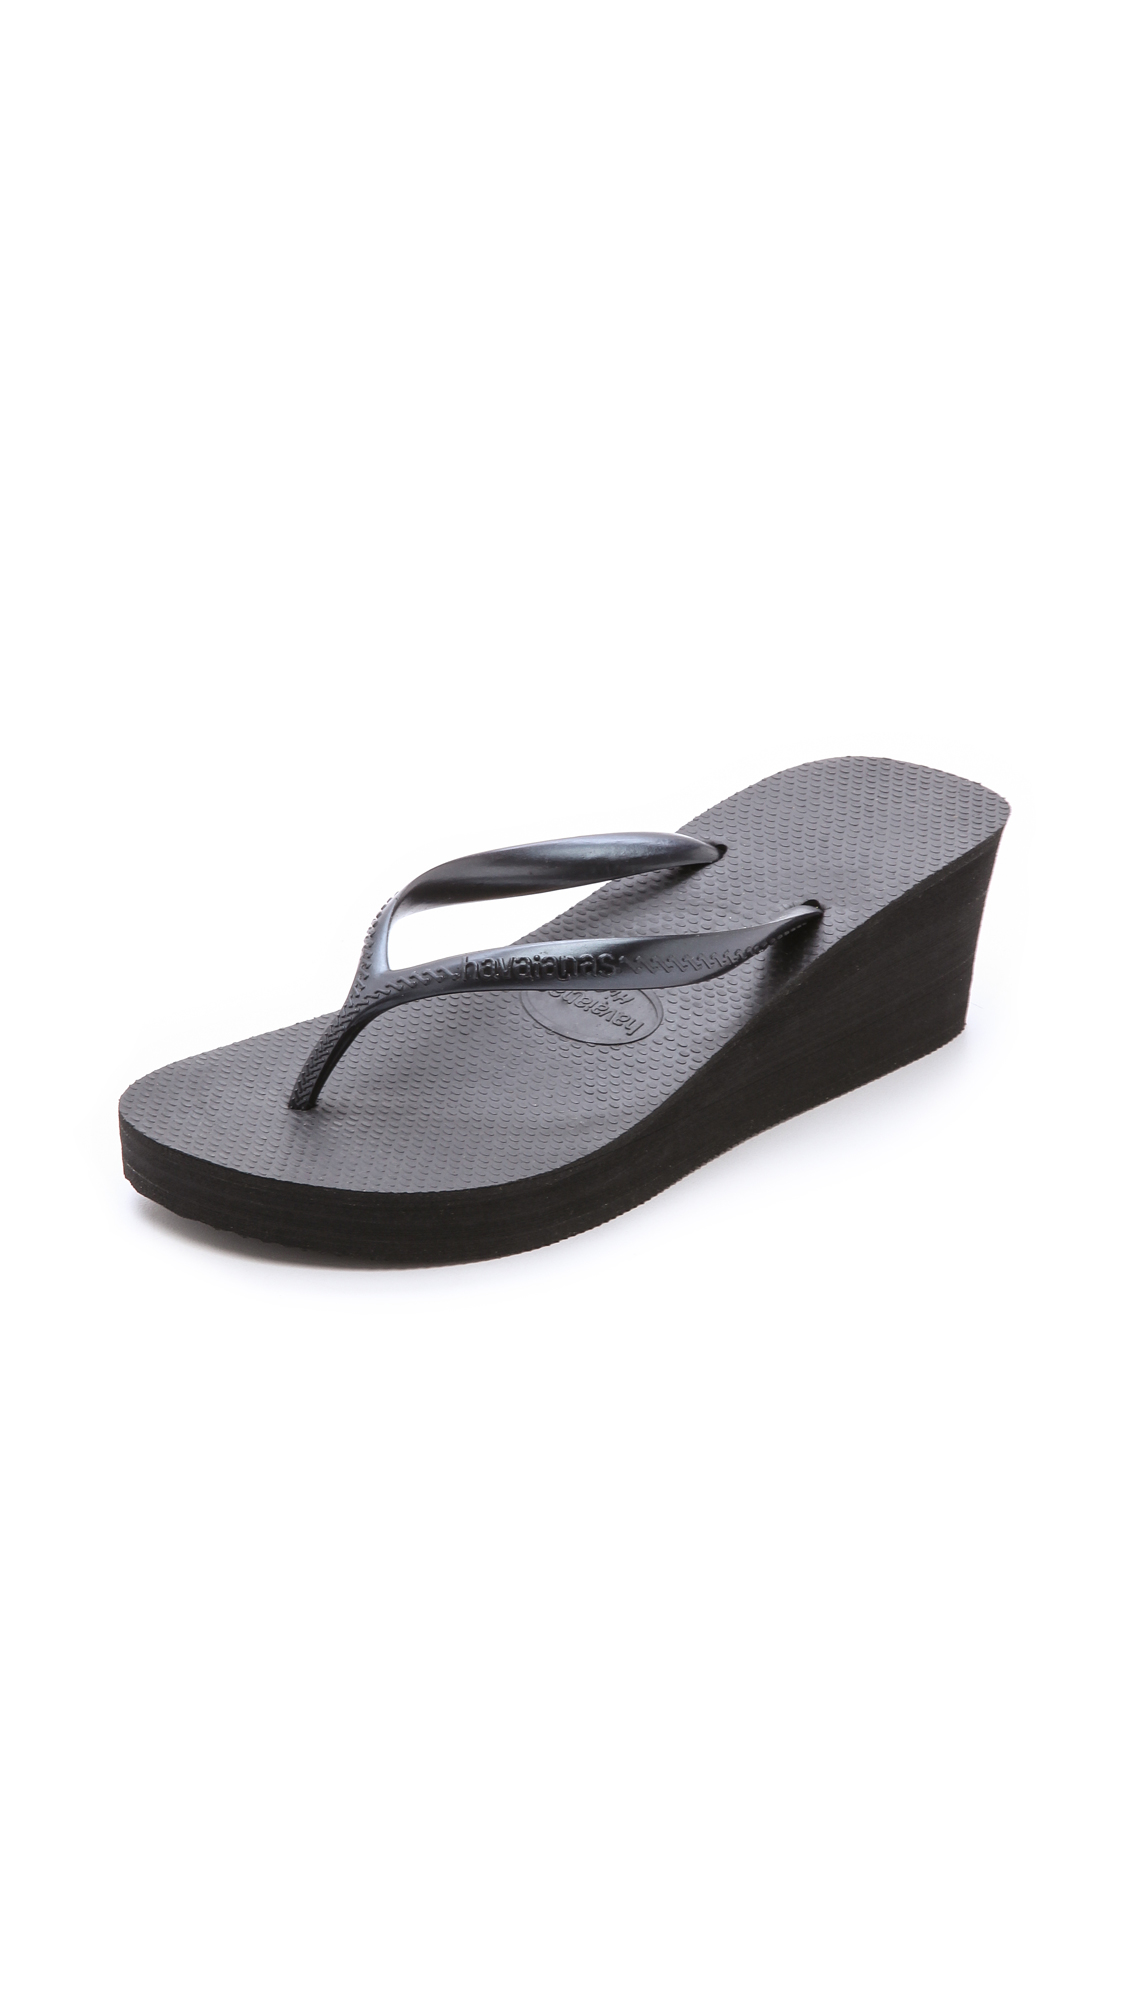 Havaianas High Fashion Wedge Flip Flops - Black